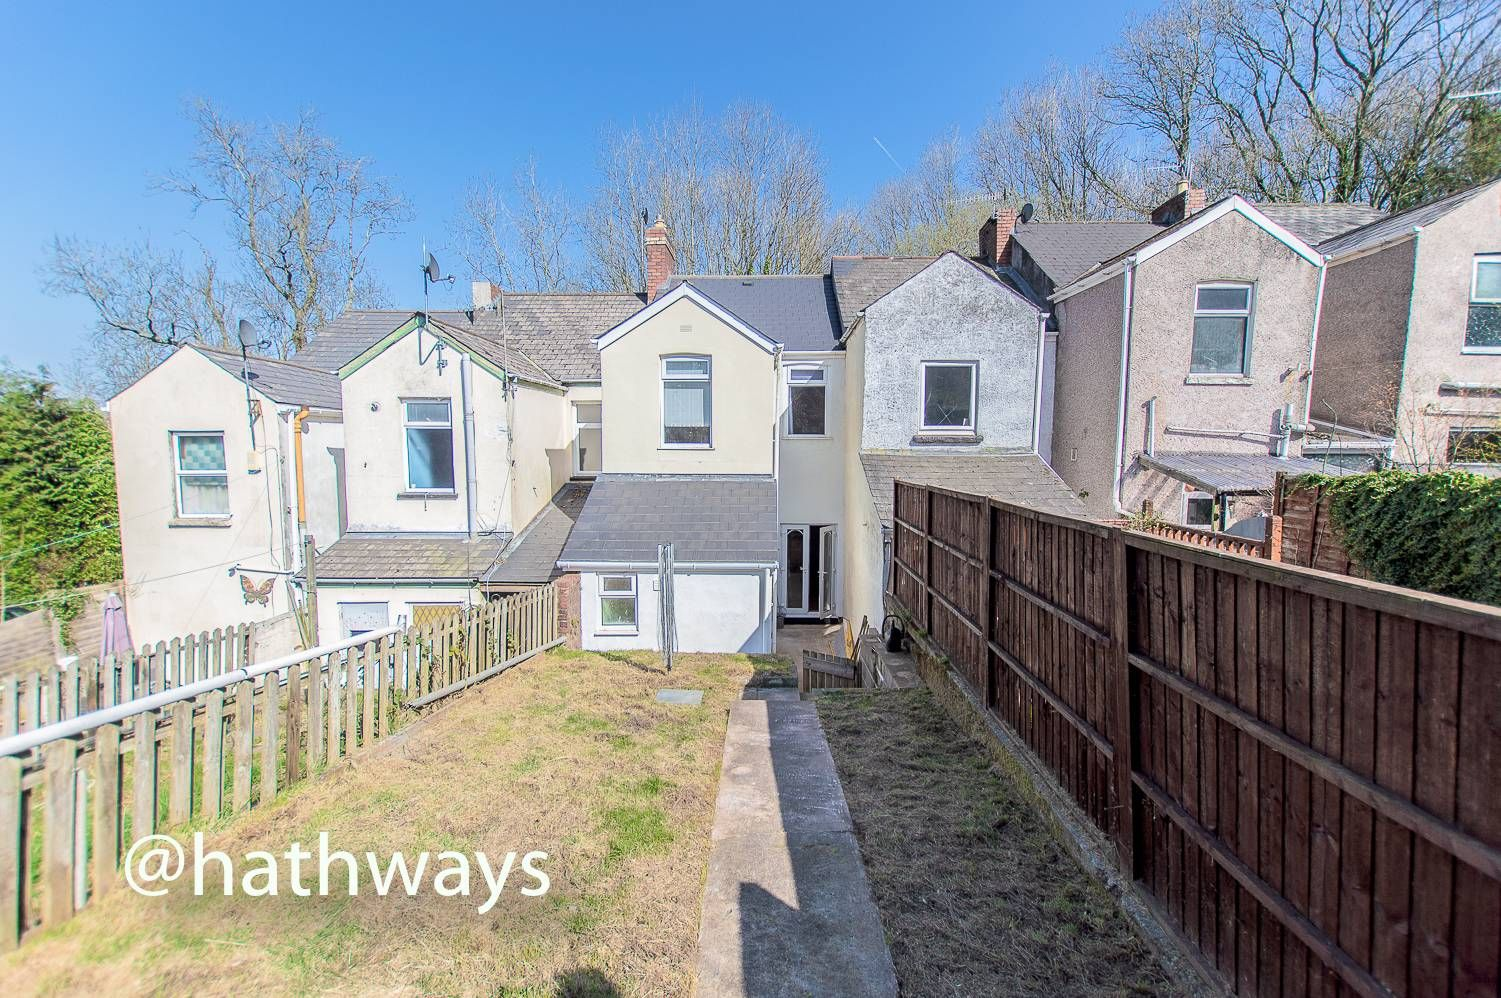 3 bed house for sale in Glenview 31